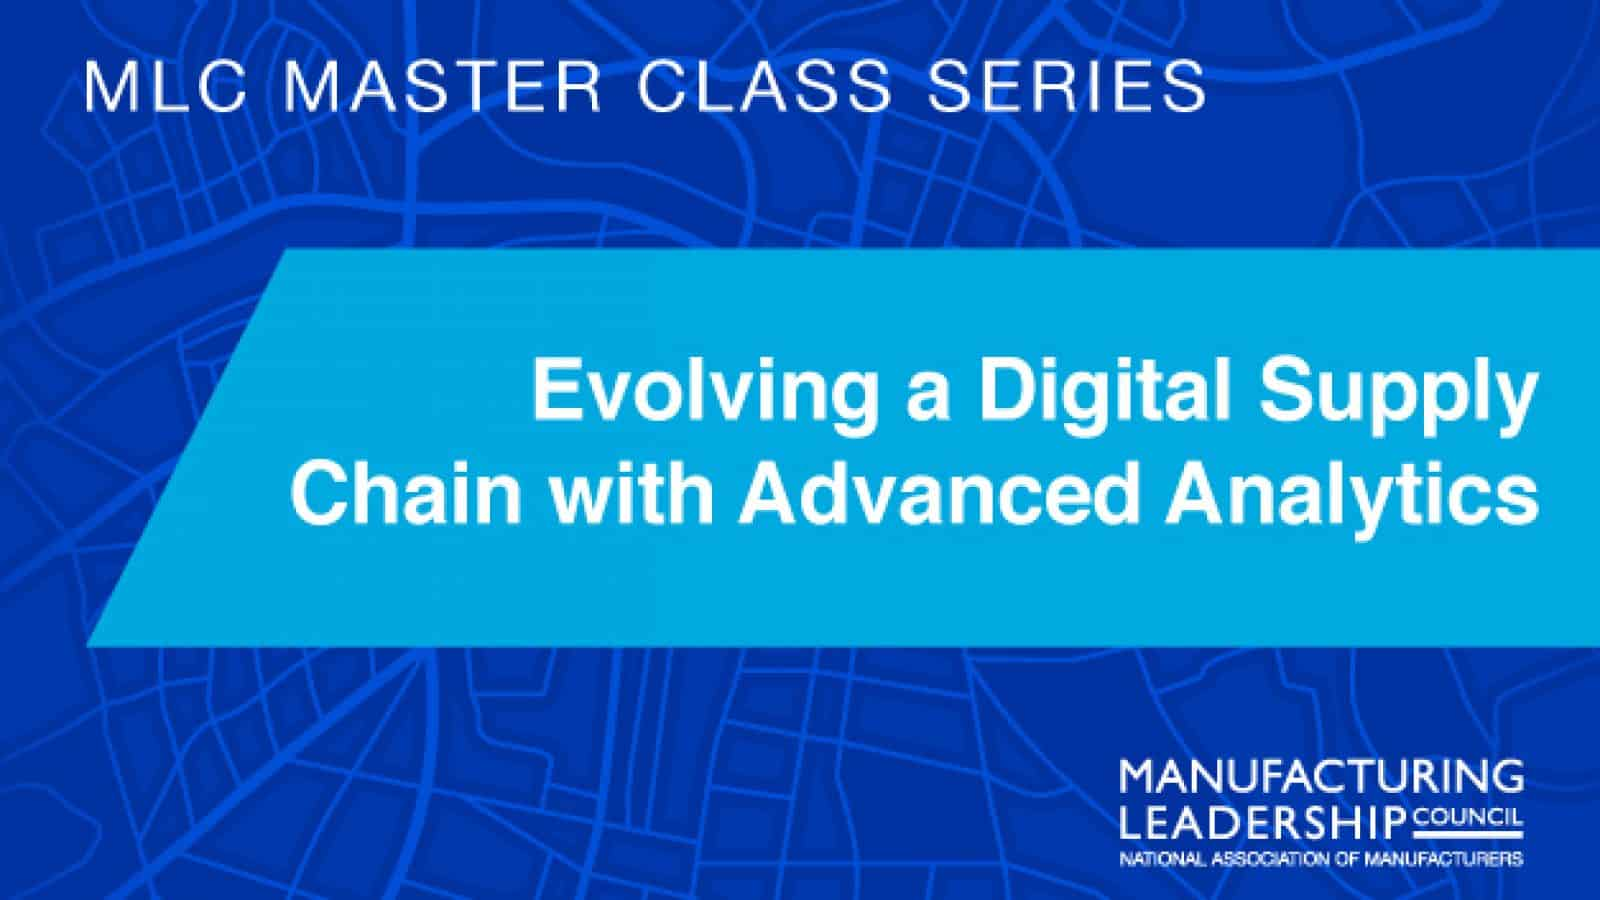 Evolving a Digital Supply Chain with Advanced Analytics